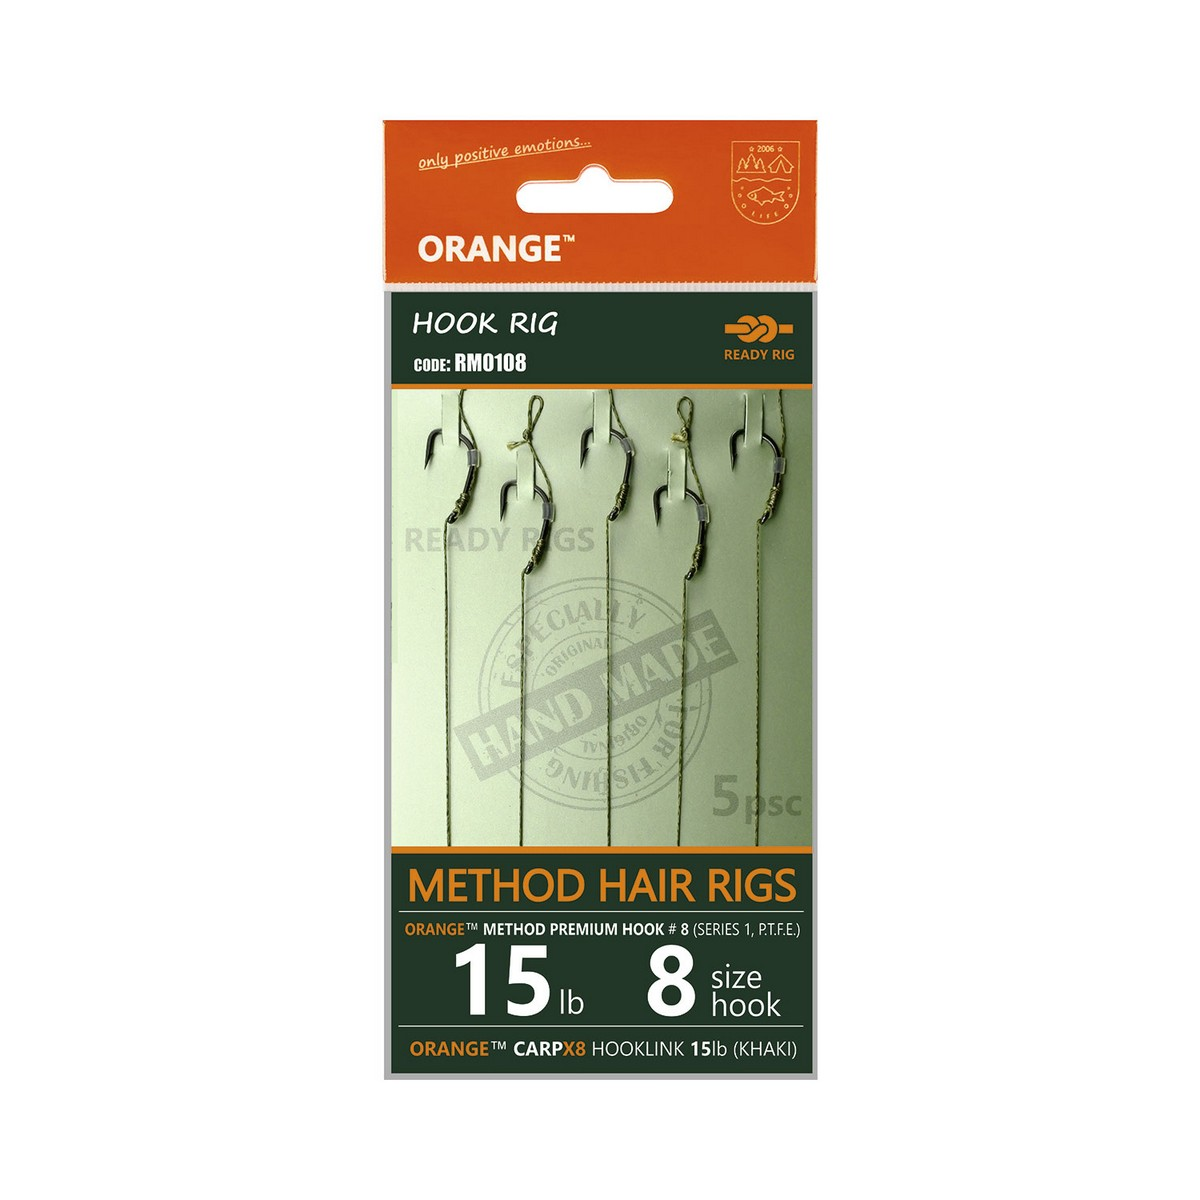 LIFE-ORANGE METHOD HAIR RIGS, (15LB, HOOK #8, SERIES 1), 5DB